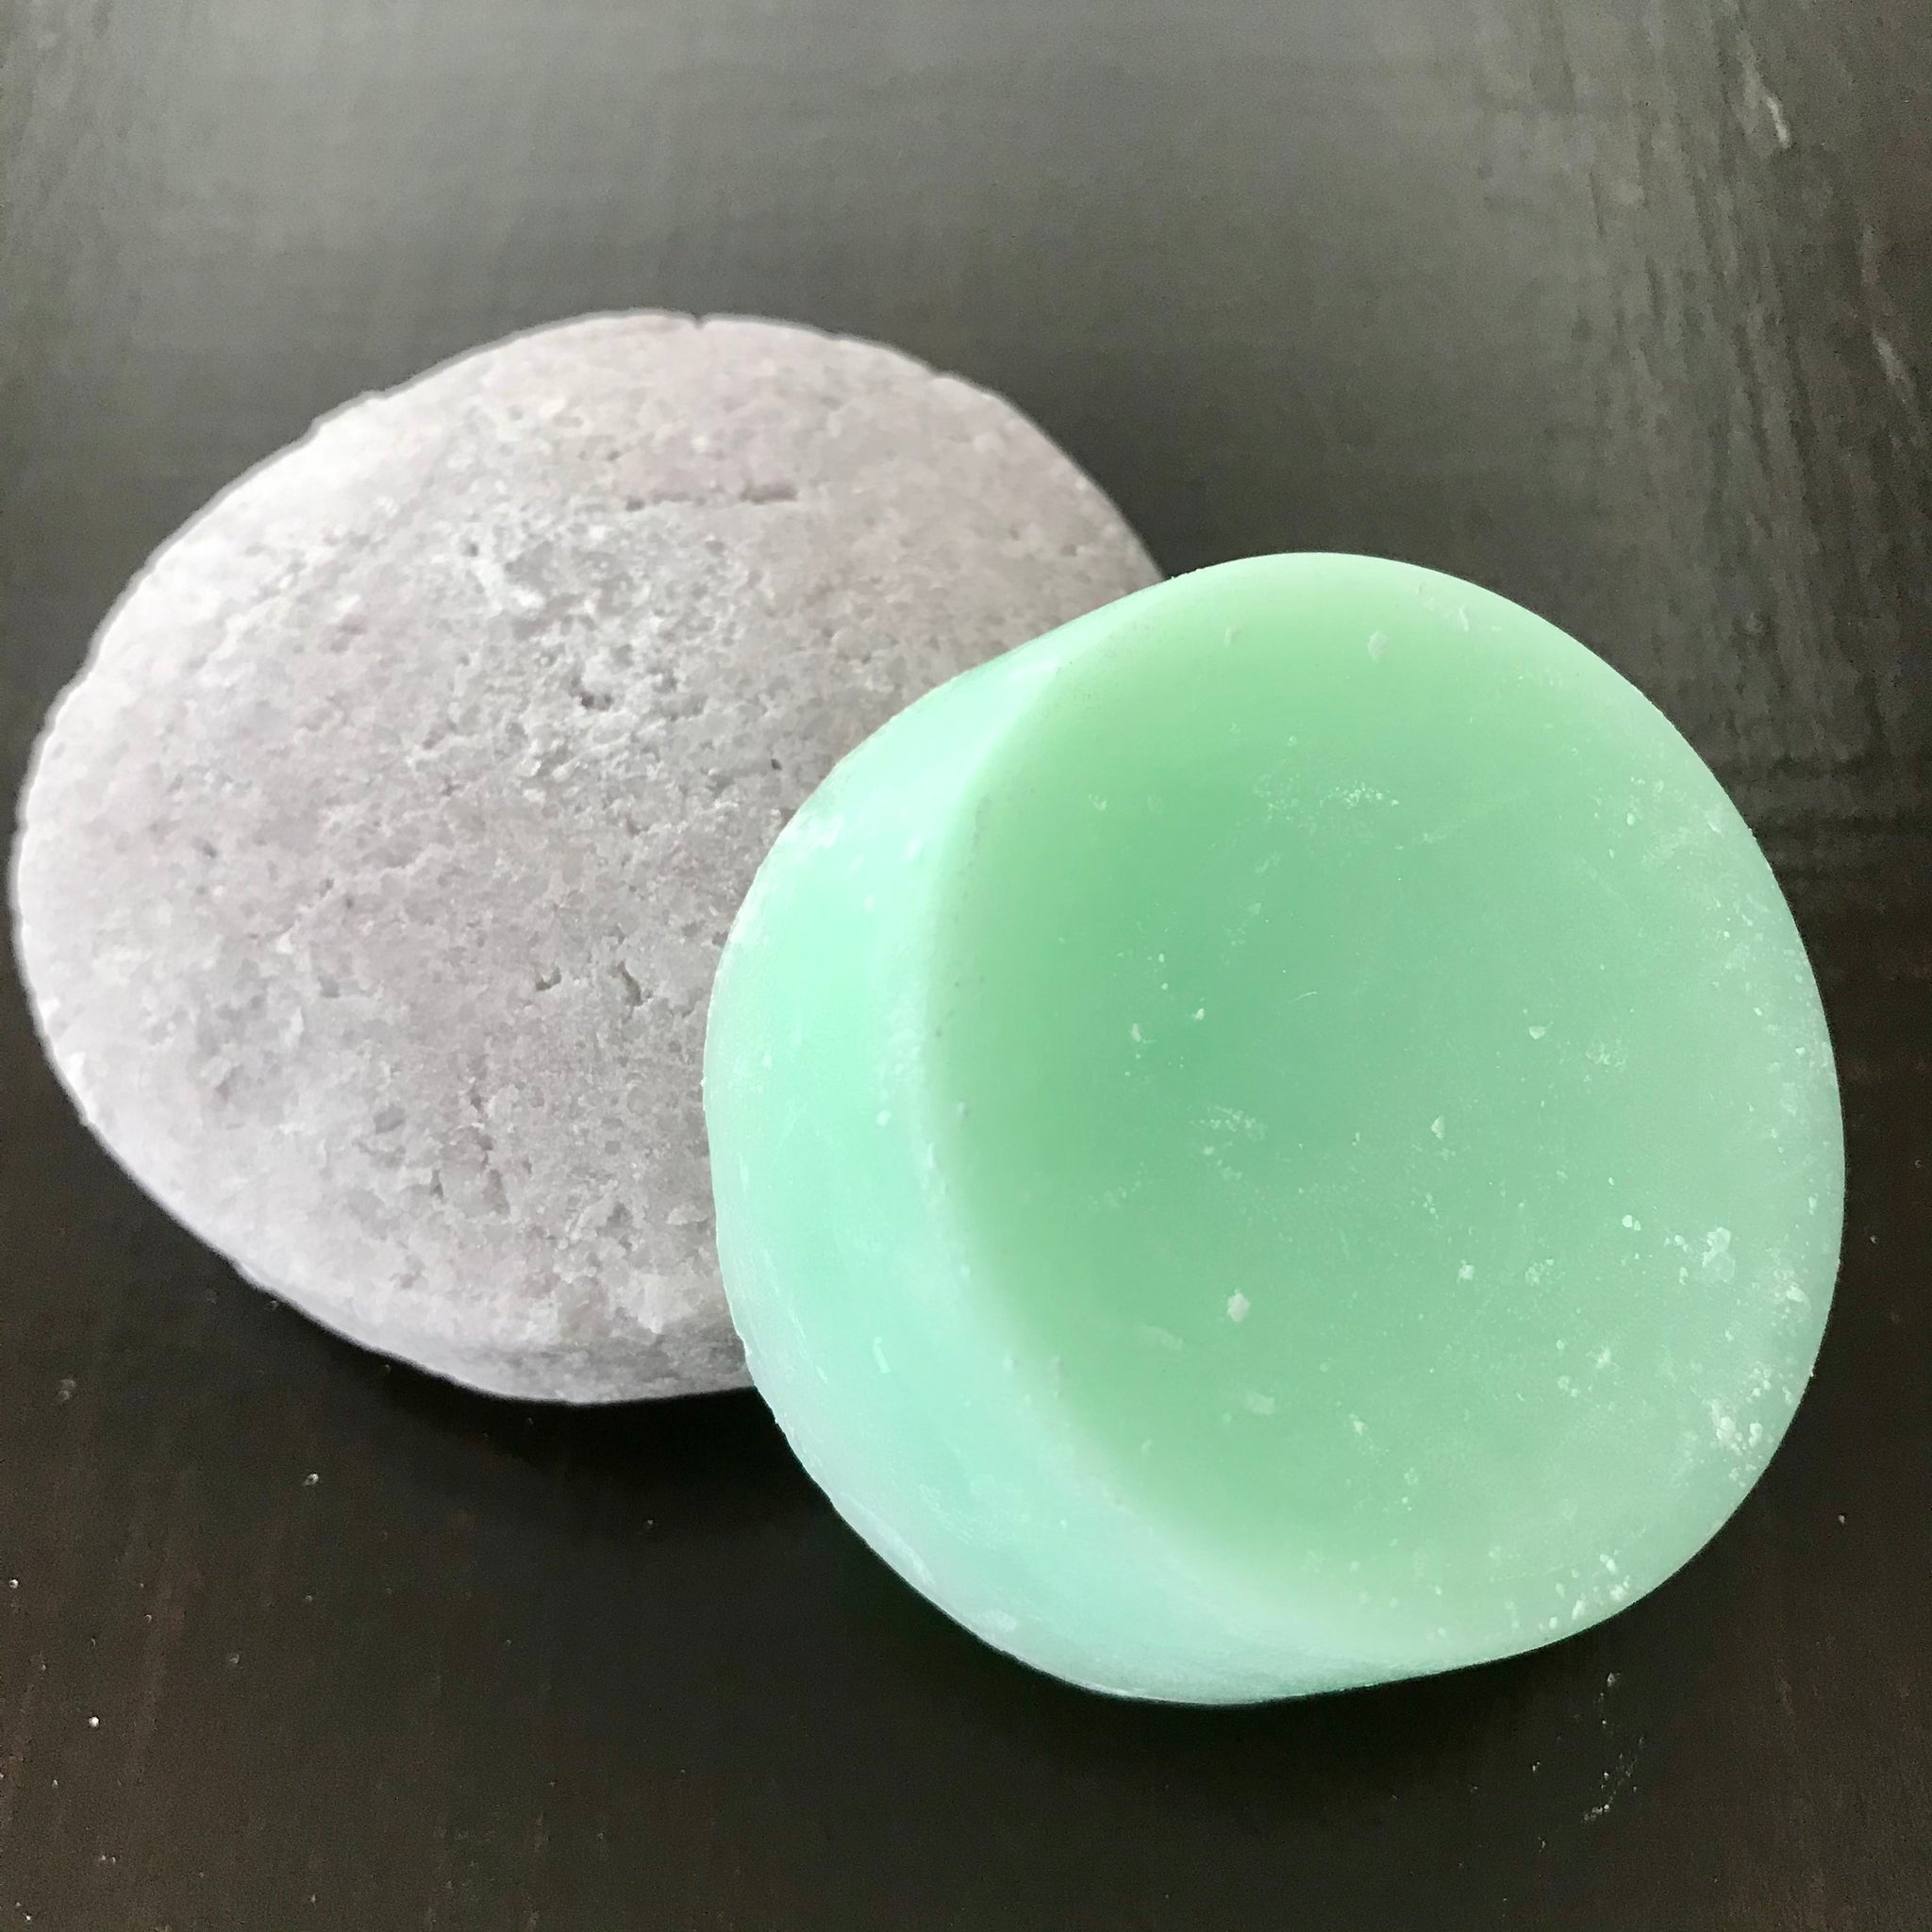 be bold bottle none shampoo and conditioner bar set for curly or coarse hair made in canada